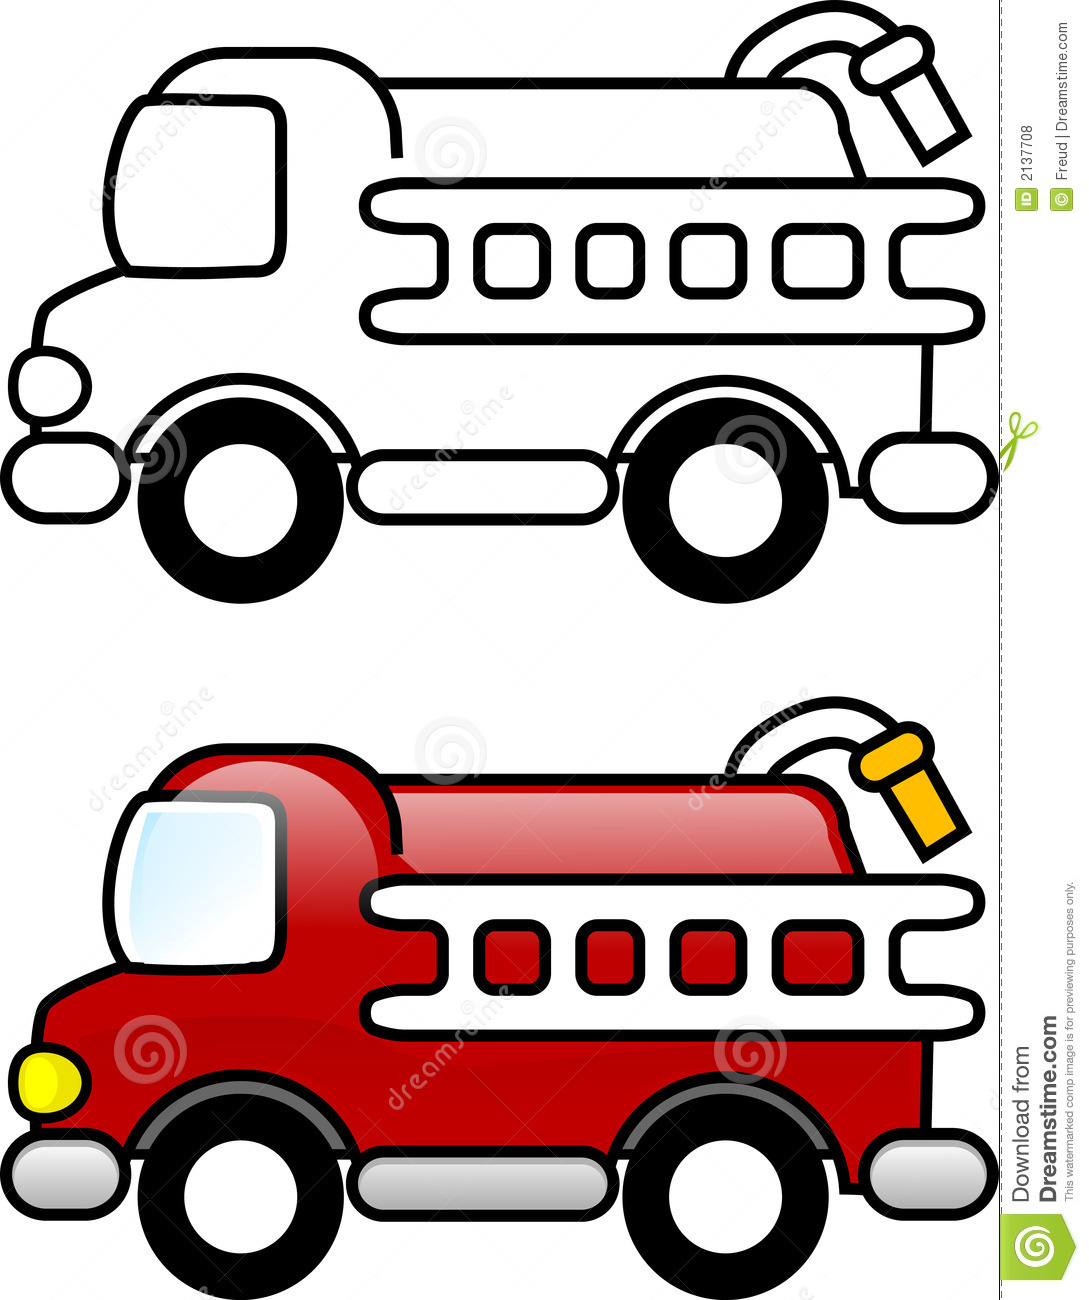 Fire Truck Photographs | Free download on ClipArtMag